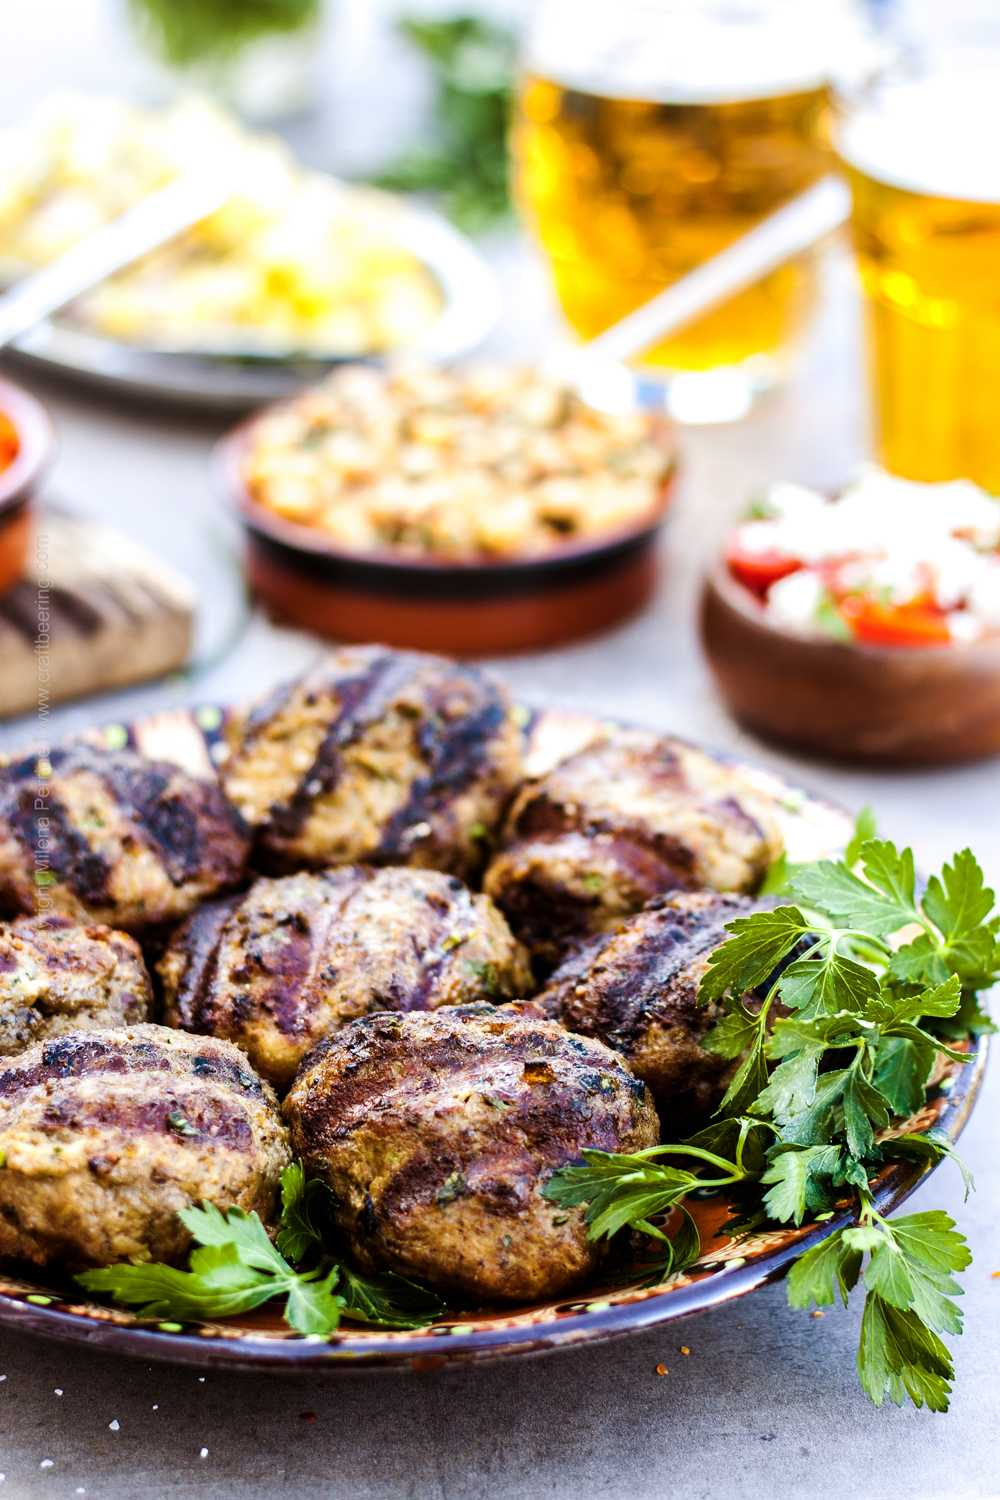 Kafta served on platter with various side dishes.